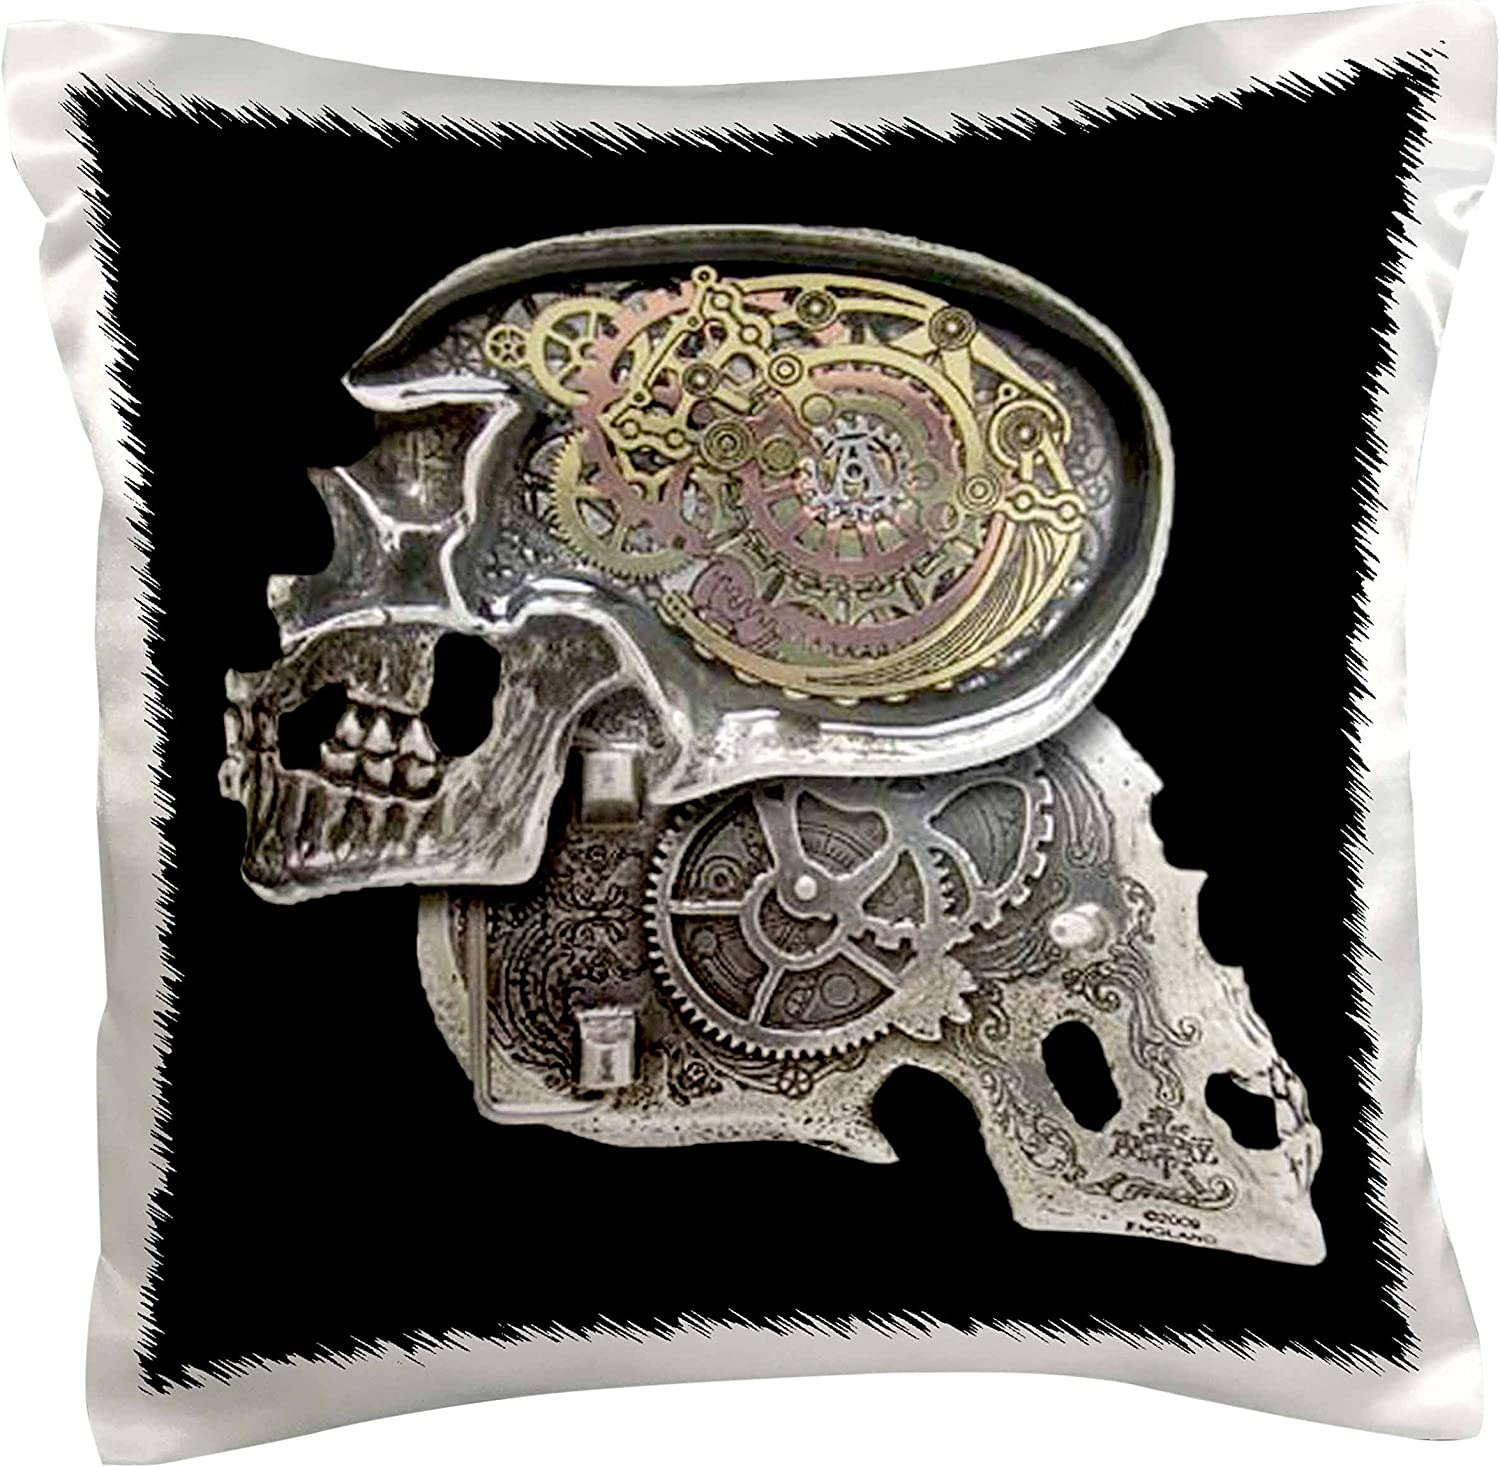 3dRose pc/_102675/_1 Steampunk Gothic Faux Metal Skull Image-Pillow Case 16 by 16